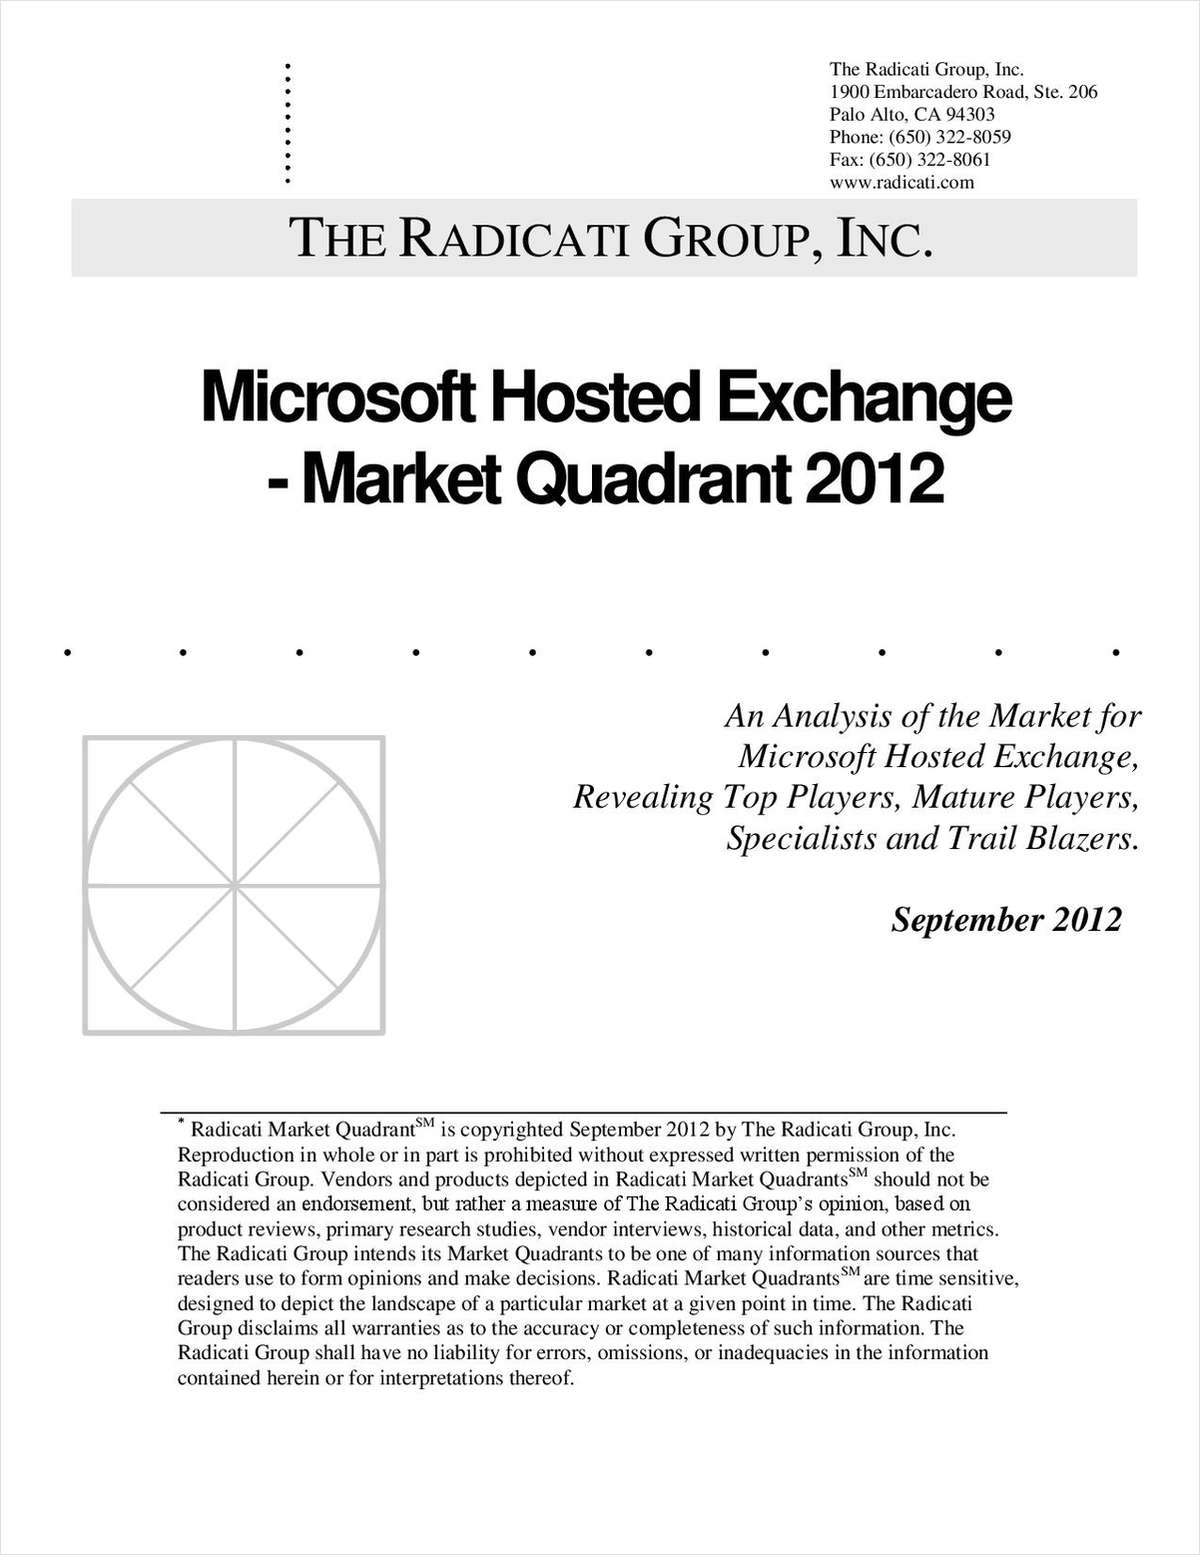 Top Players in Microsoft Hosted Exchange Announced in New Radicati Report